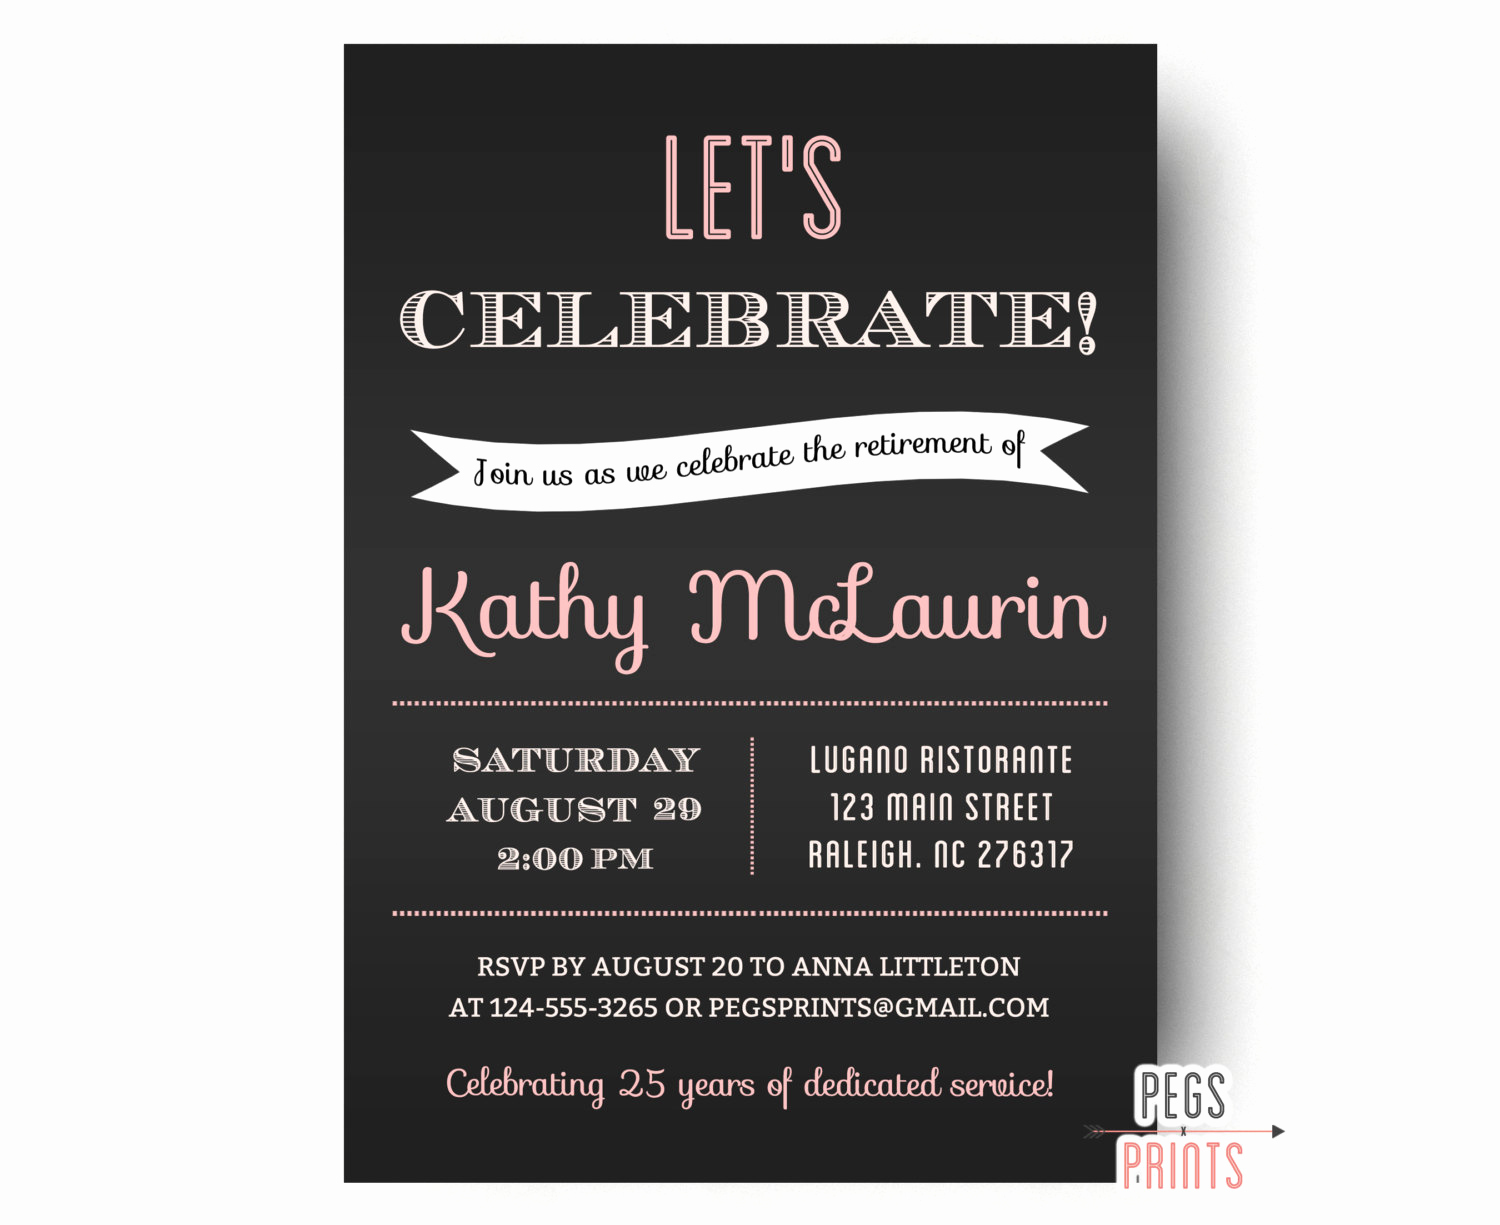 Retirement Party Invitations Template Beautiful Retirement Party Invitation Retirement Party Invites